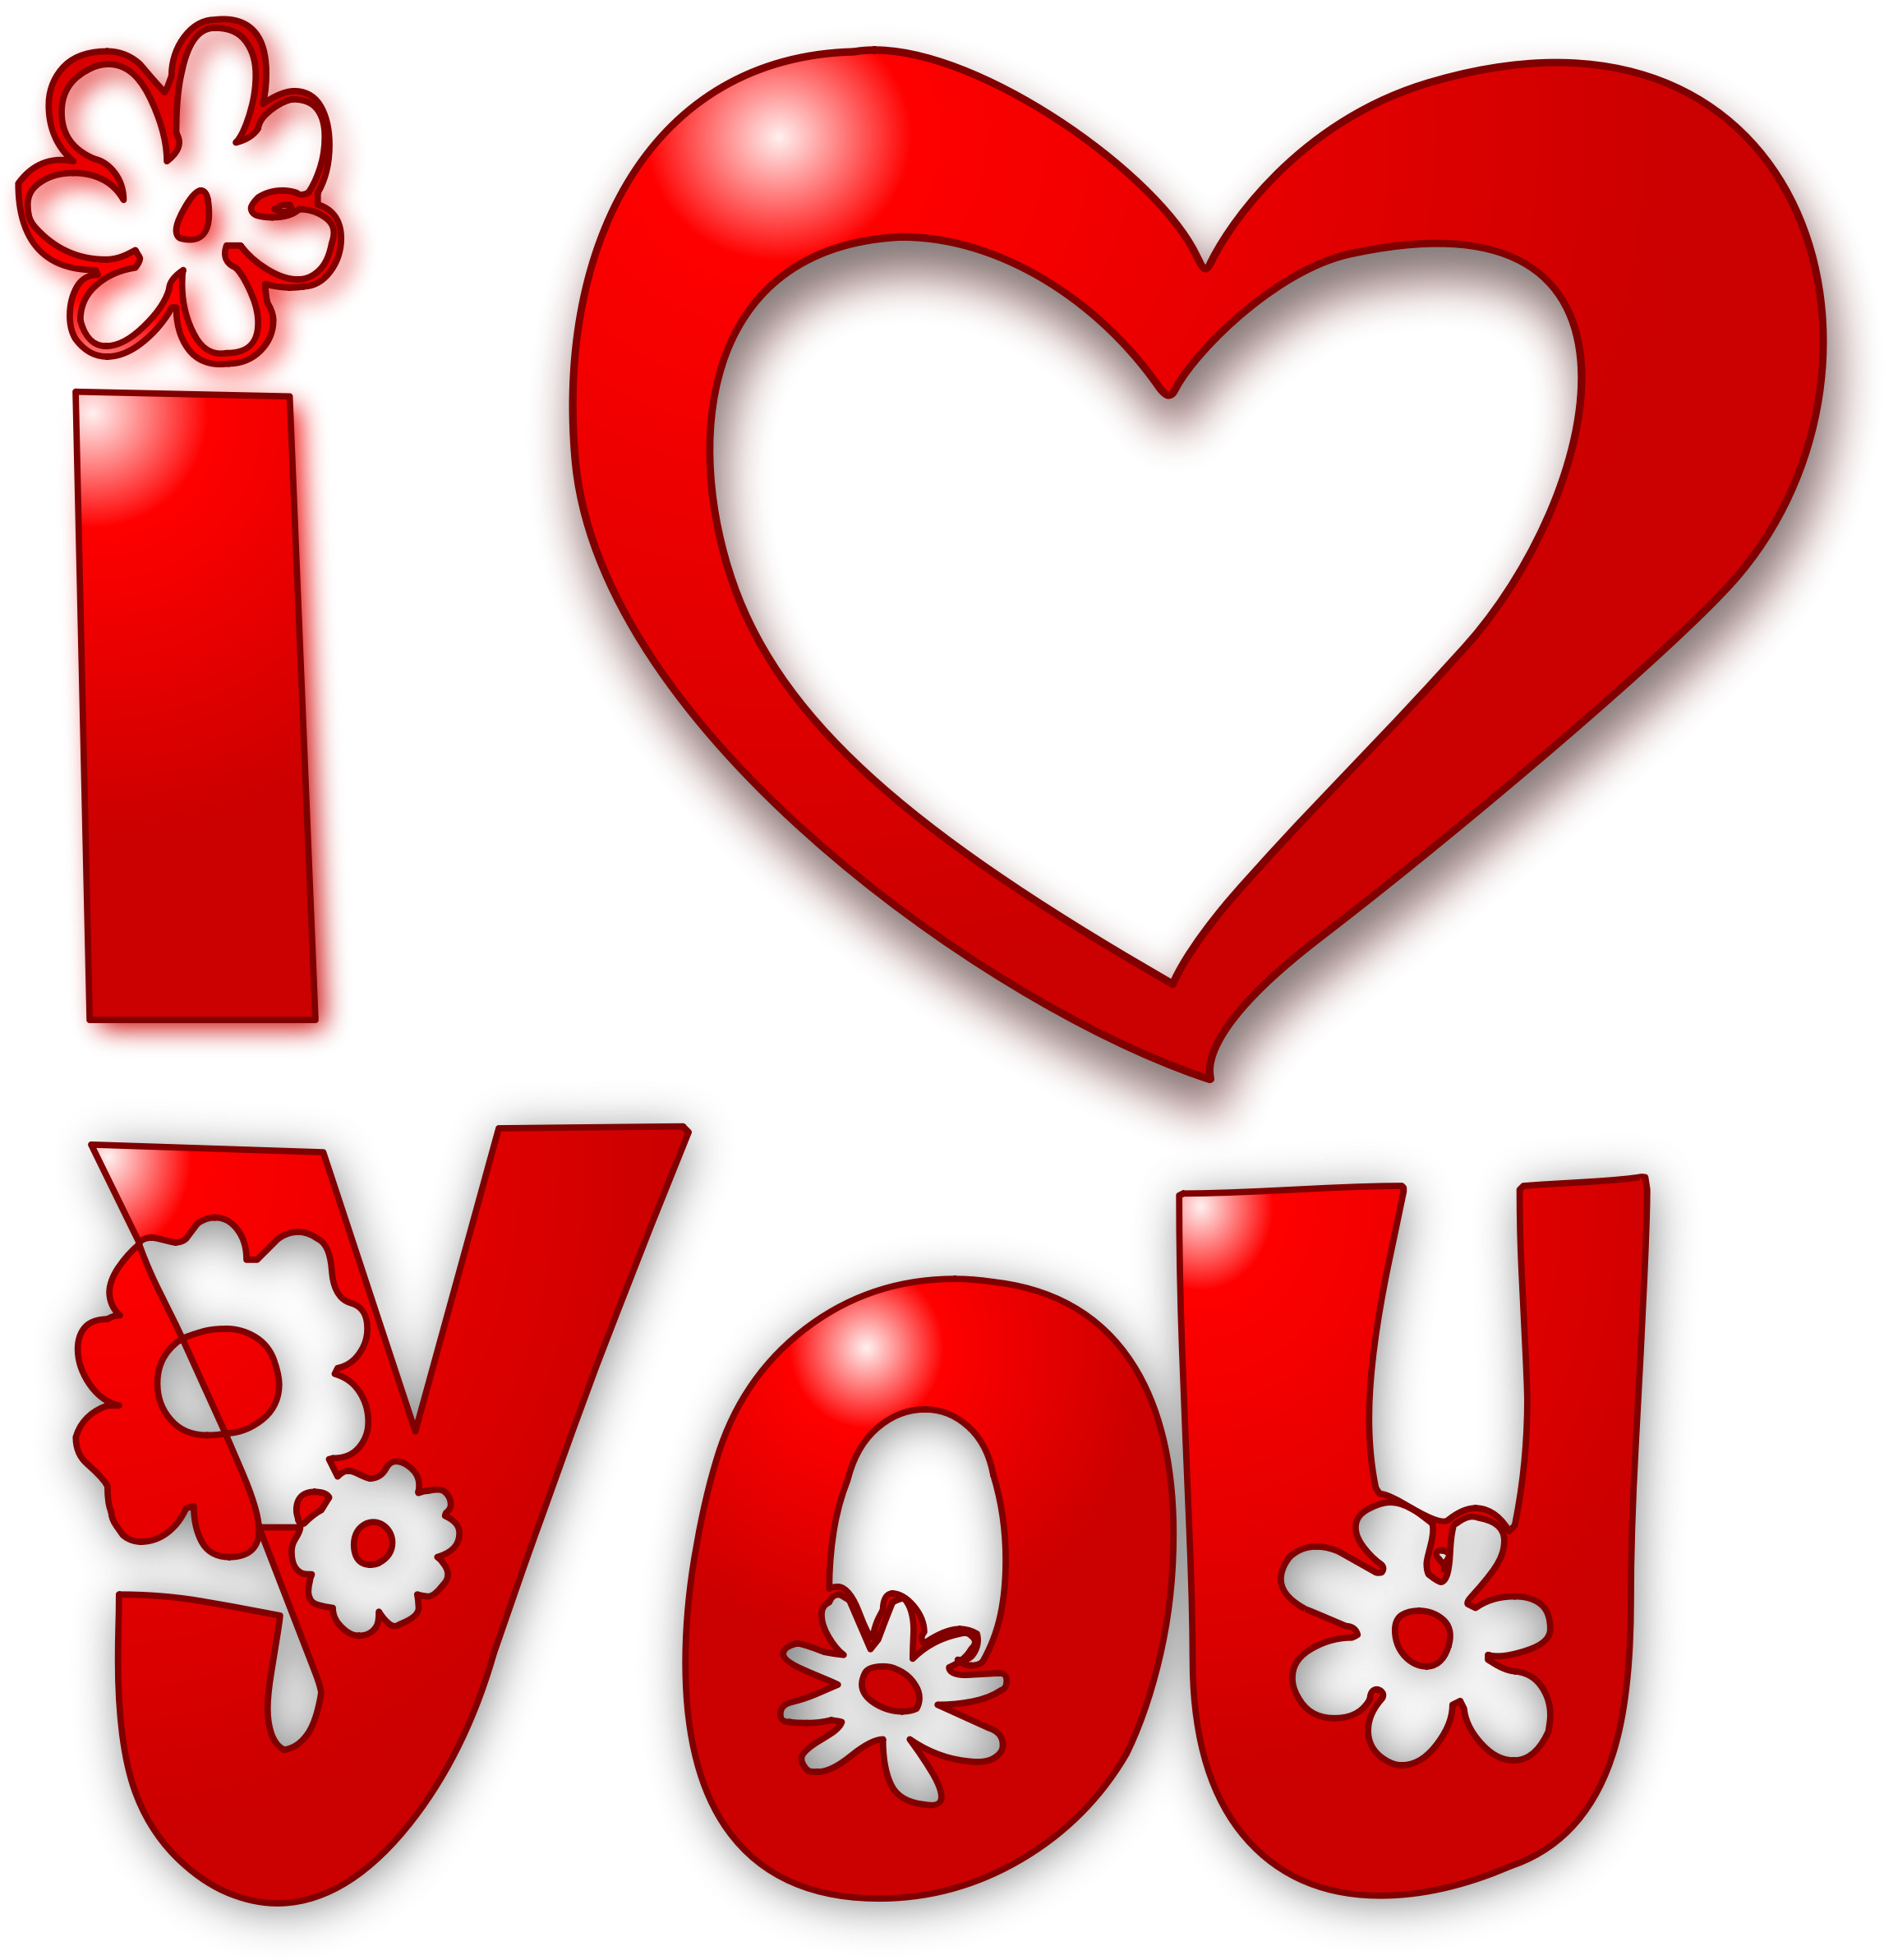 I Love You by cyberscooty